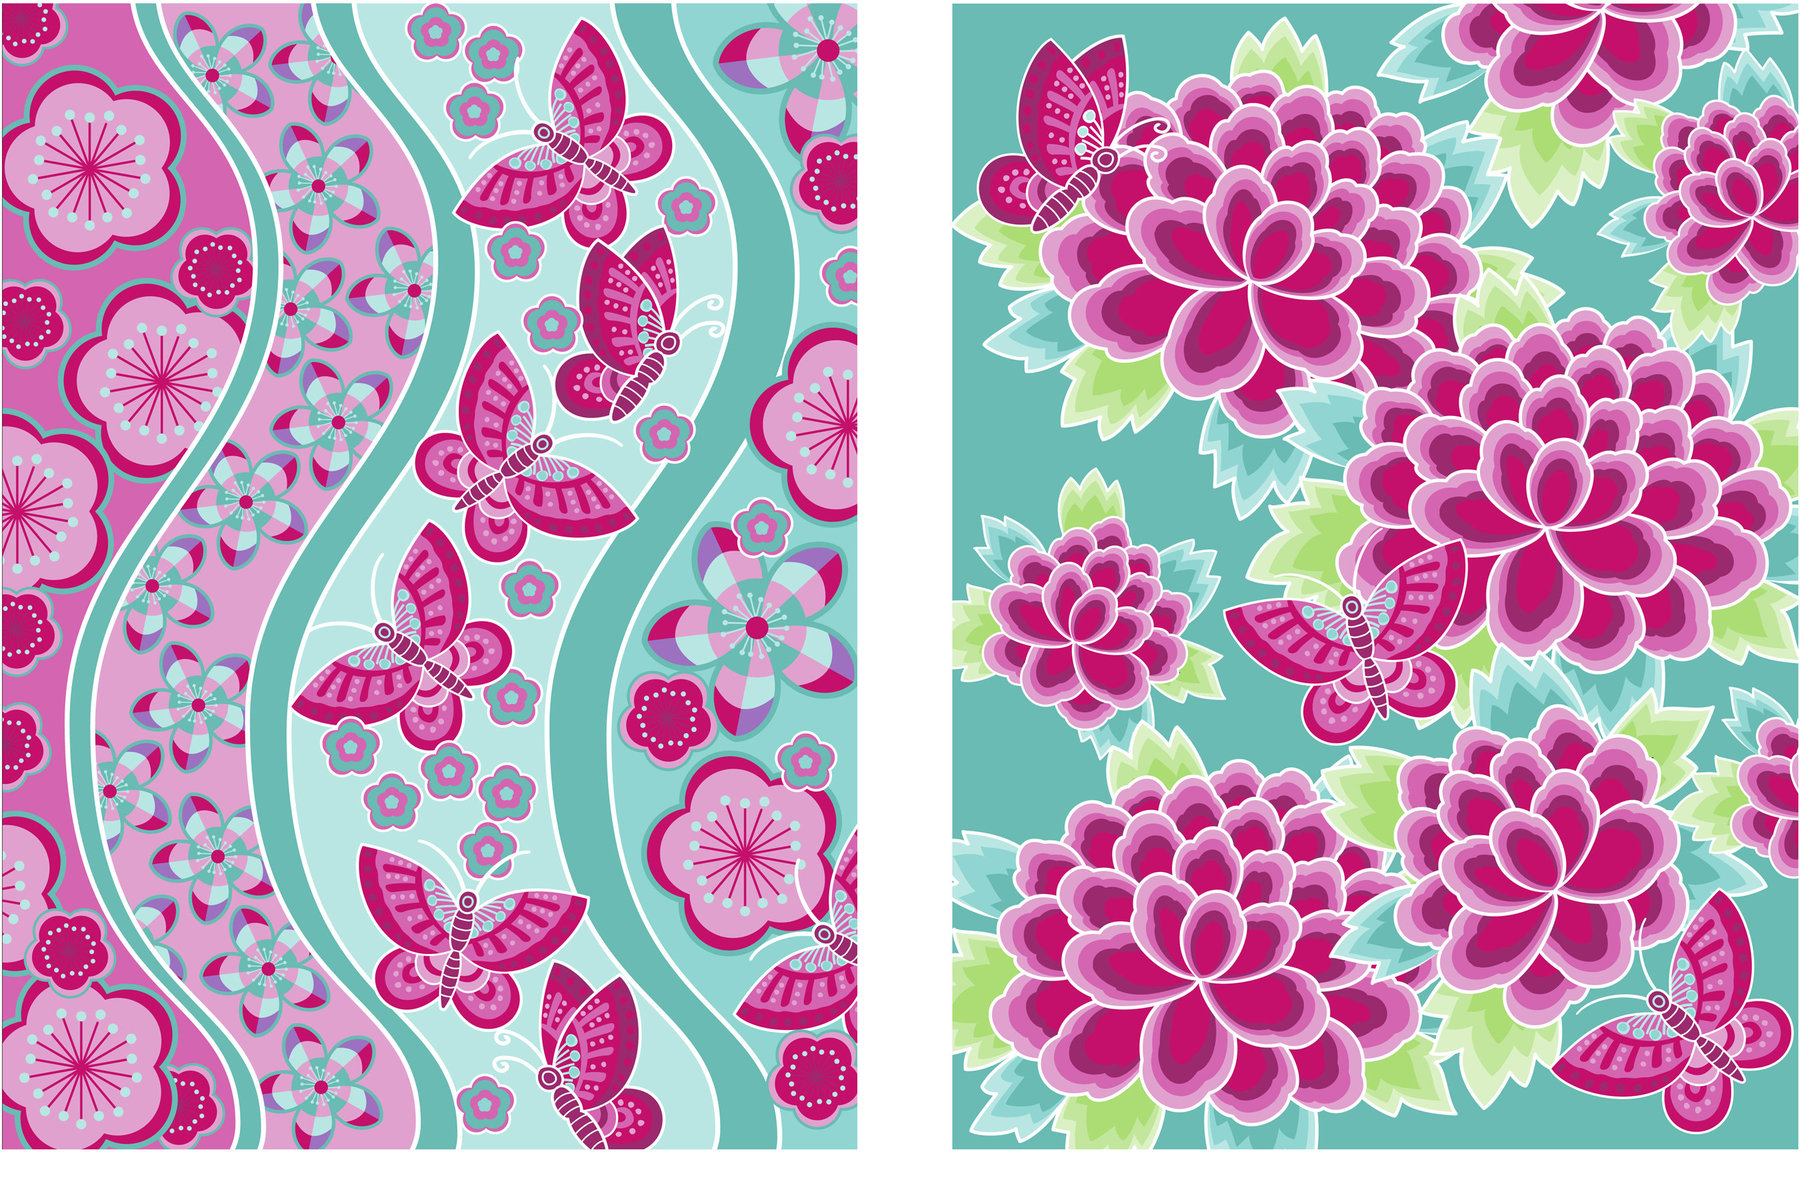 Surface design for a range of gift wrap.